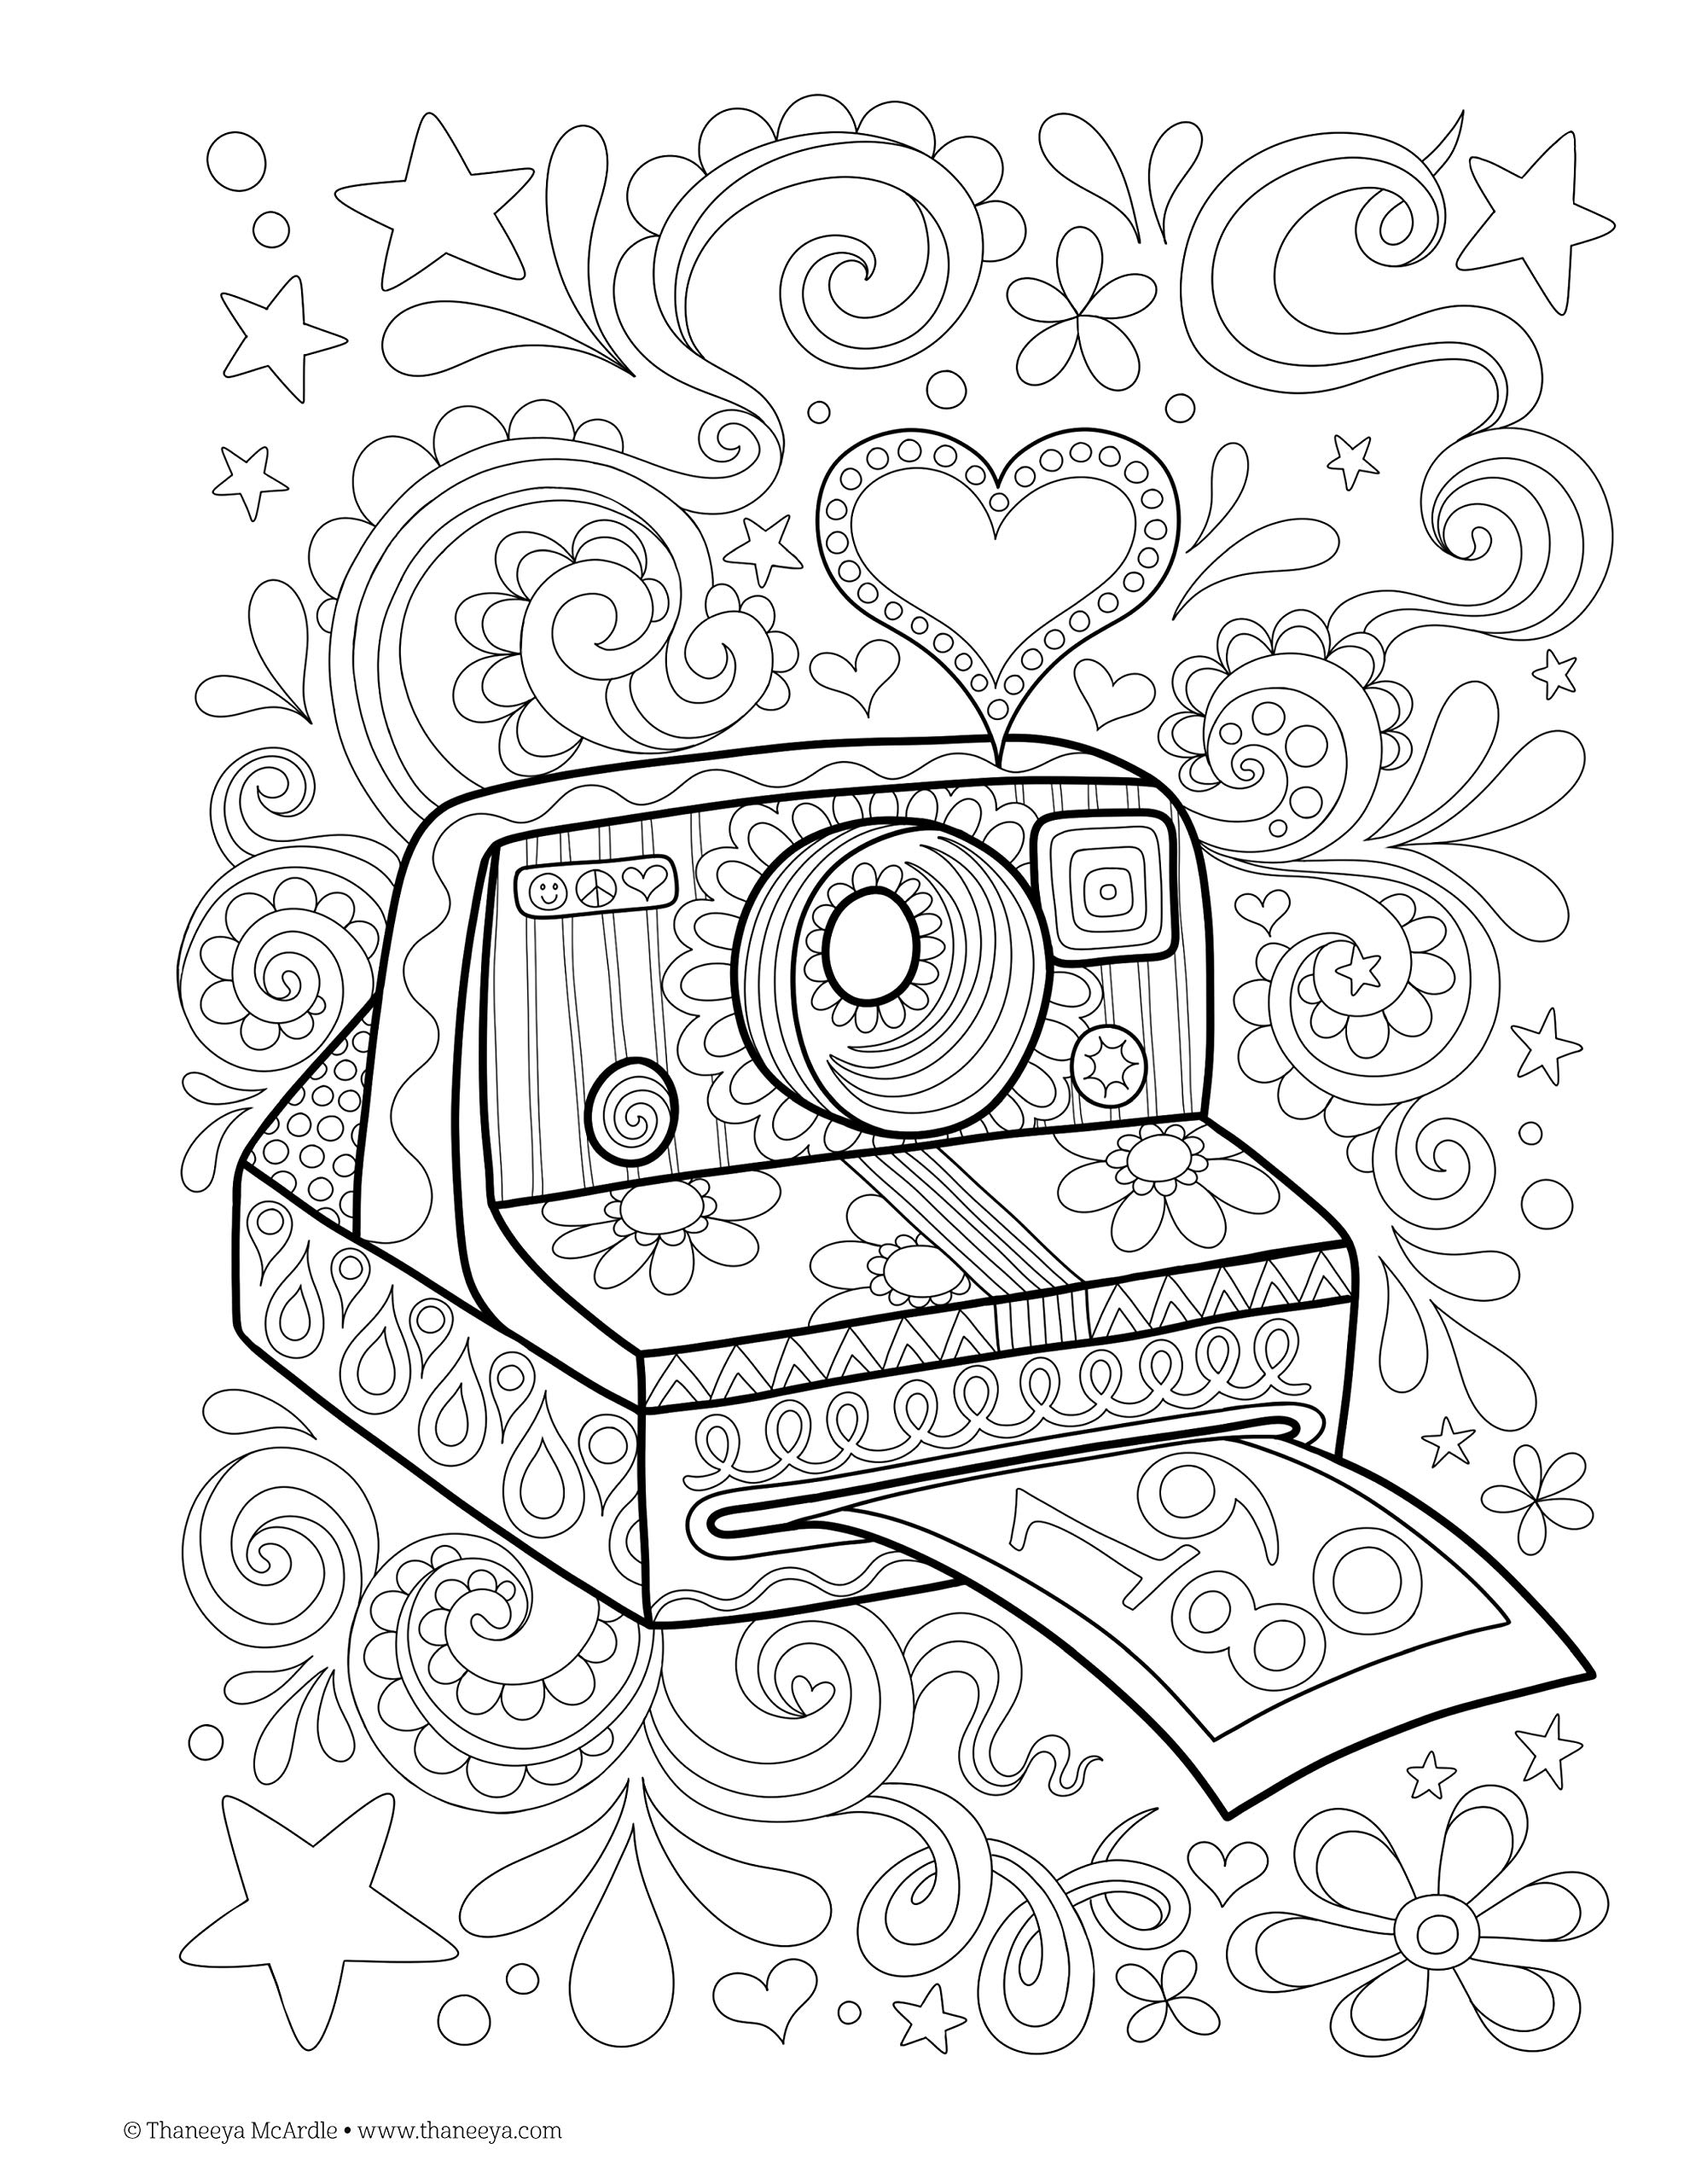 Coloring Pages Hipster Coloring Book Design Originals Digital Coloring Home